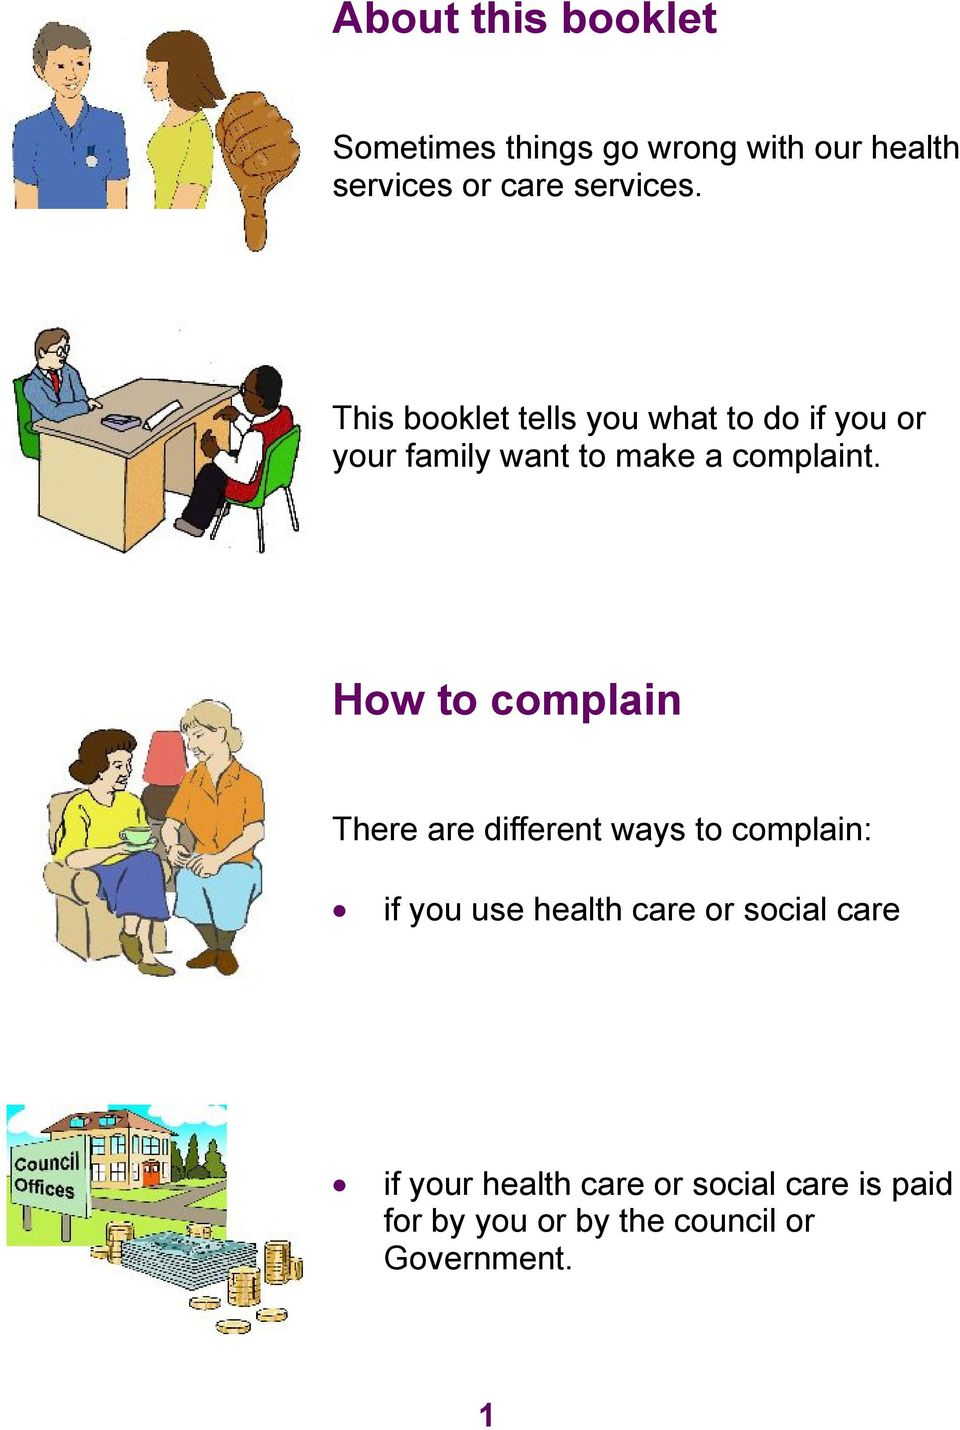 How to complain There are different ways to complain: if you use health care or social